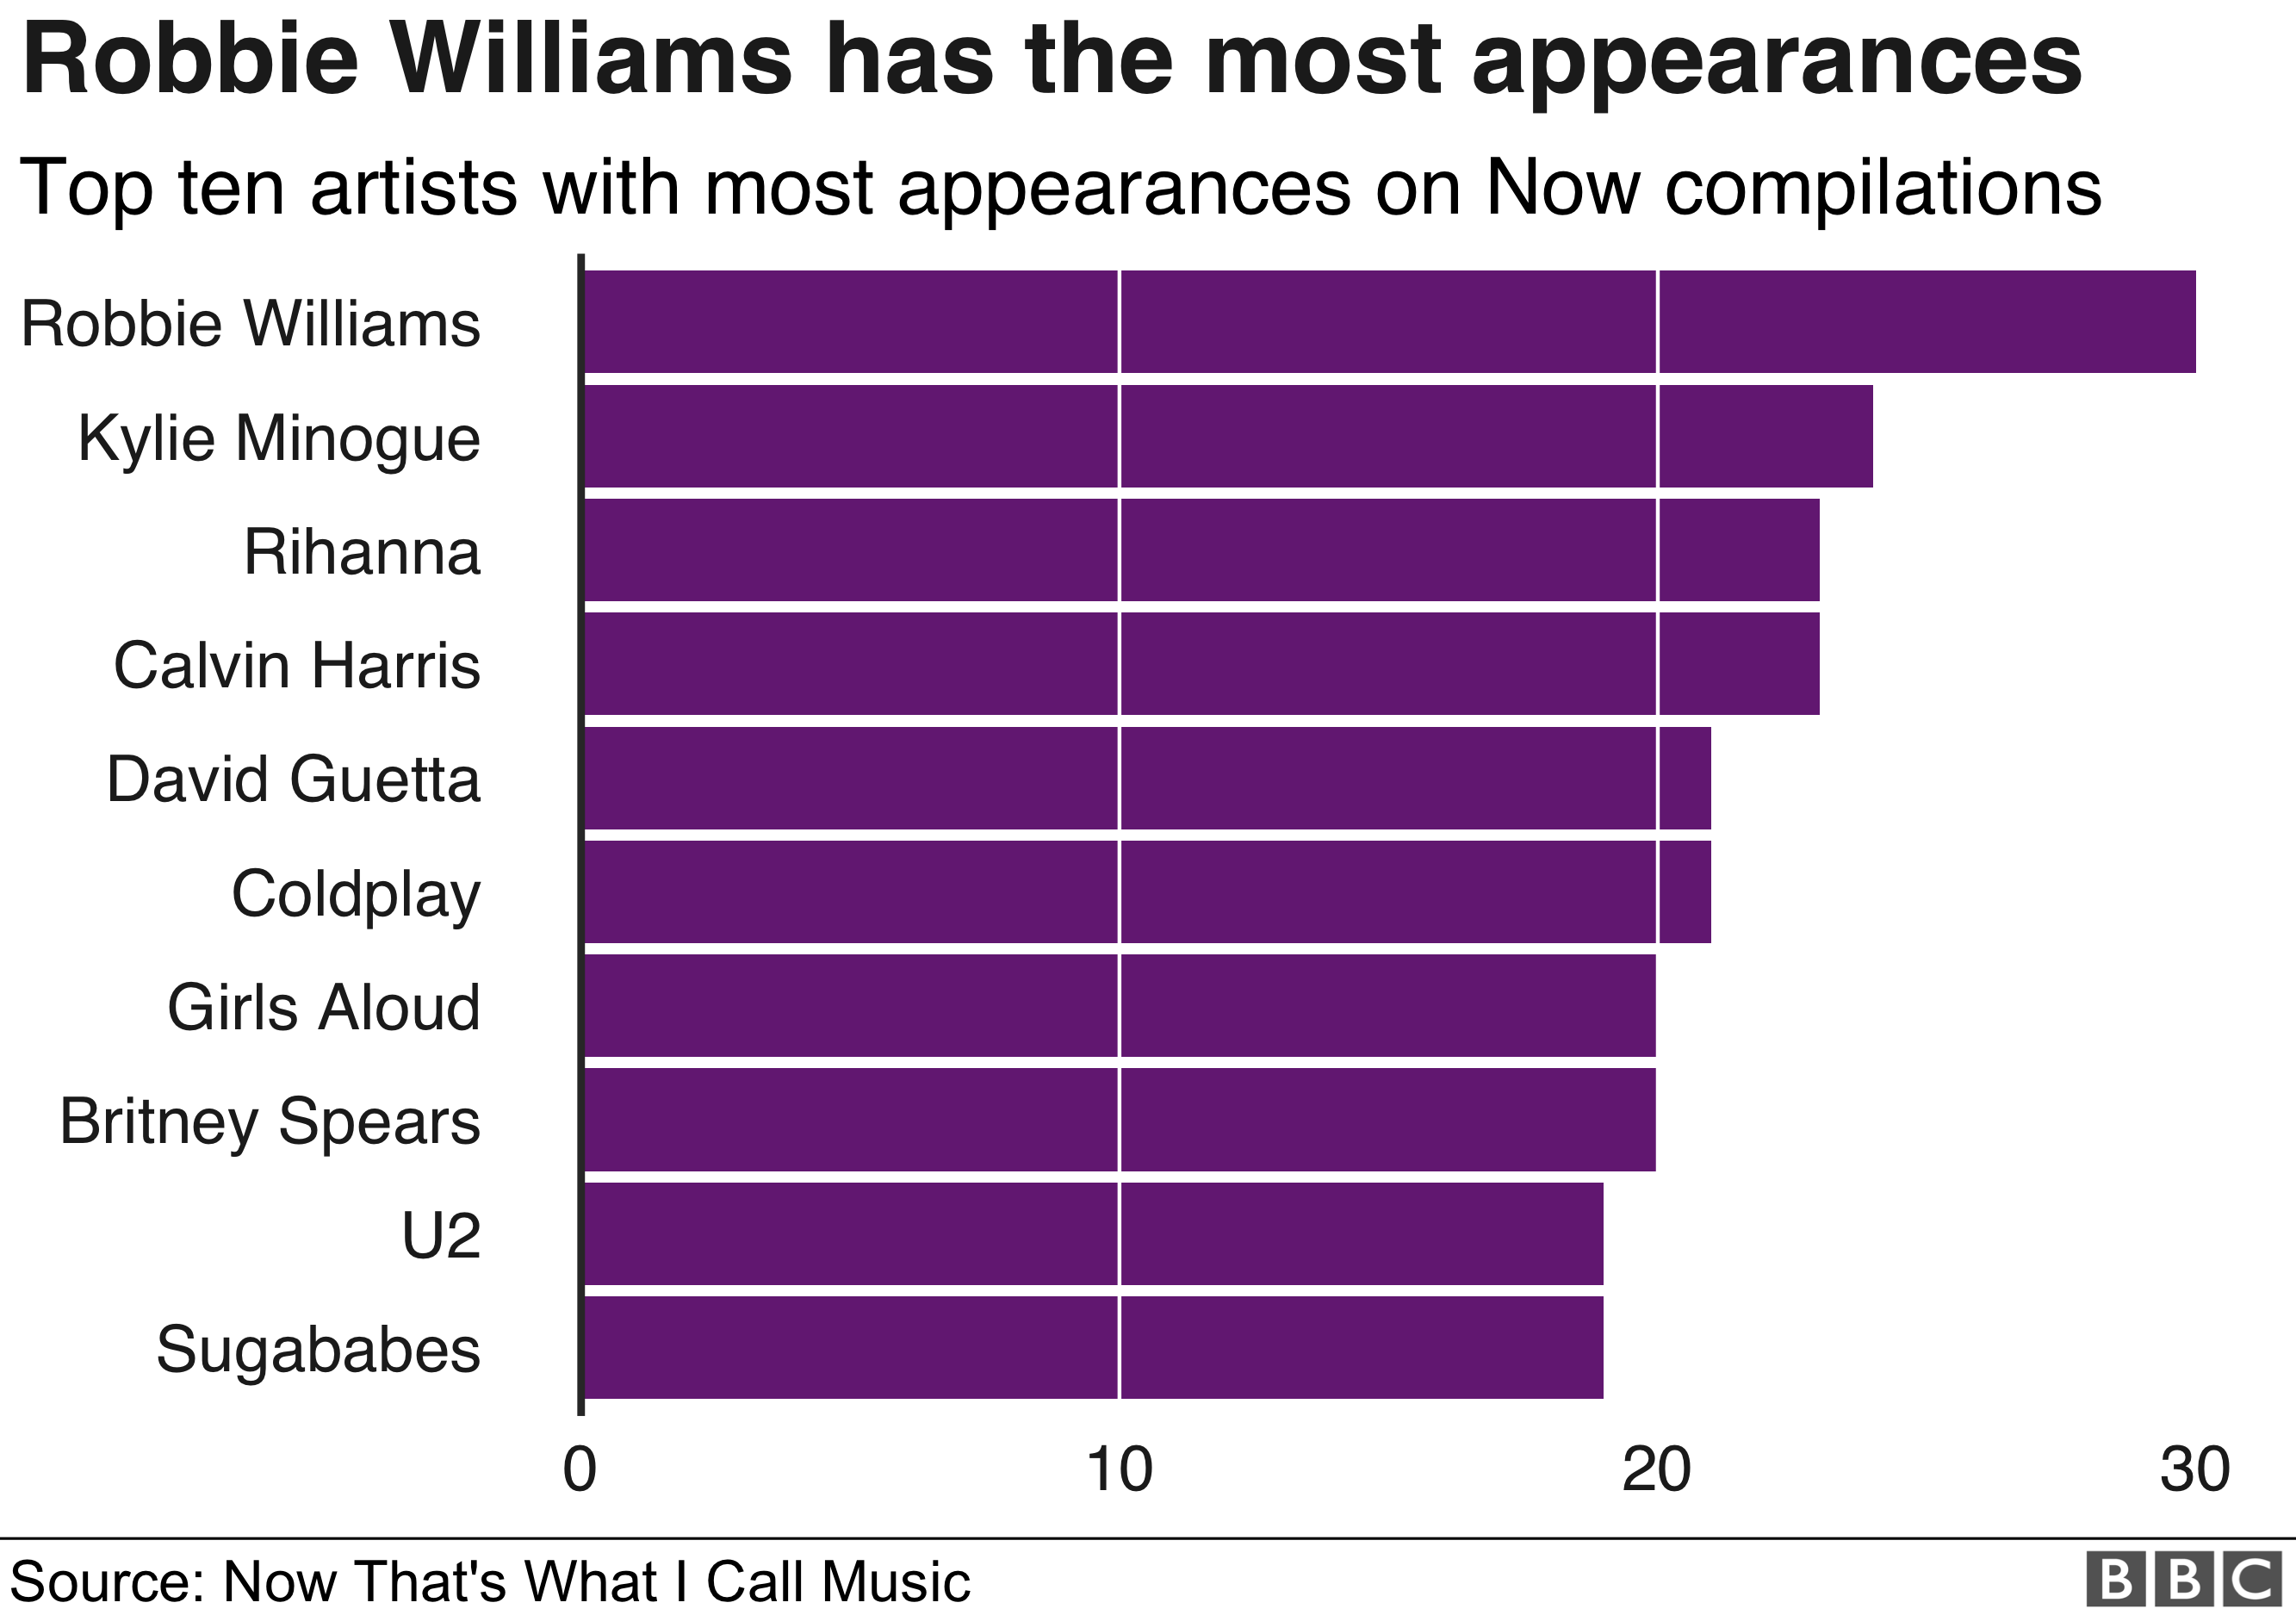 Artists with the most appearances on Now albums